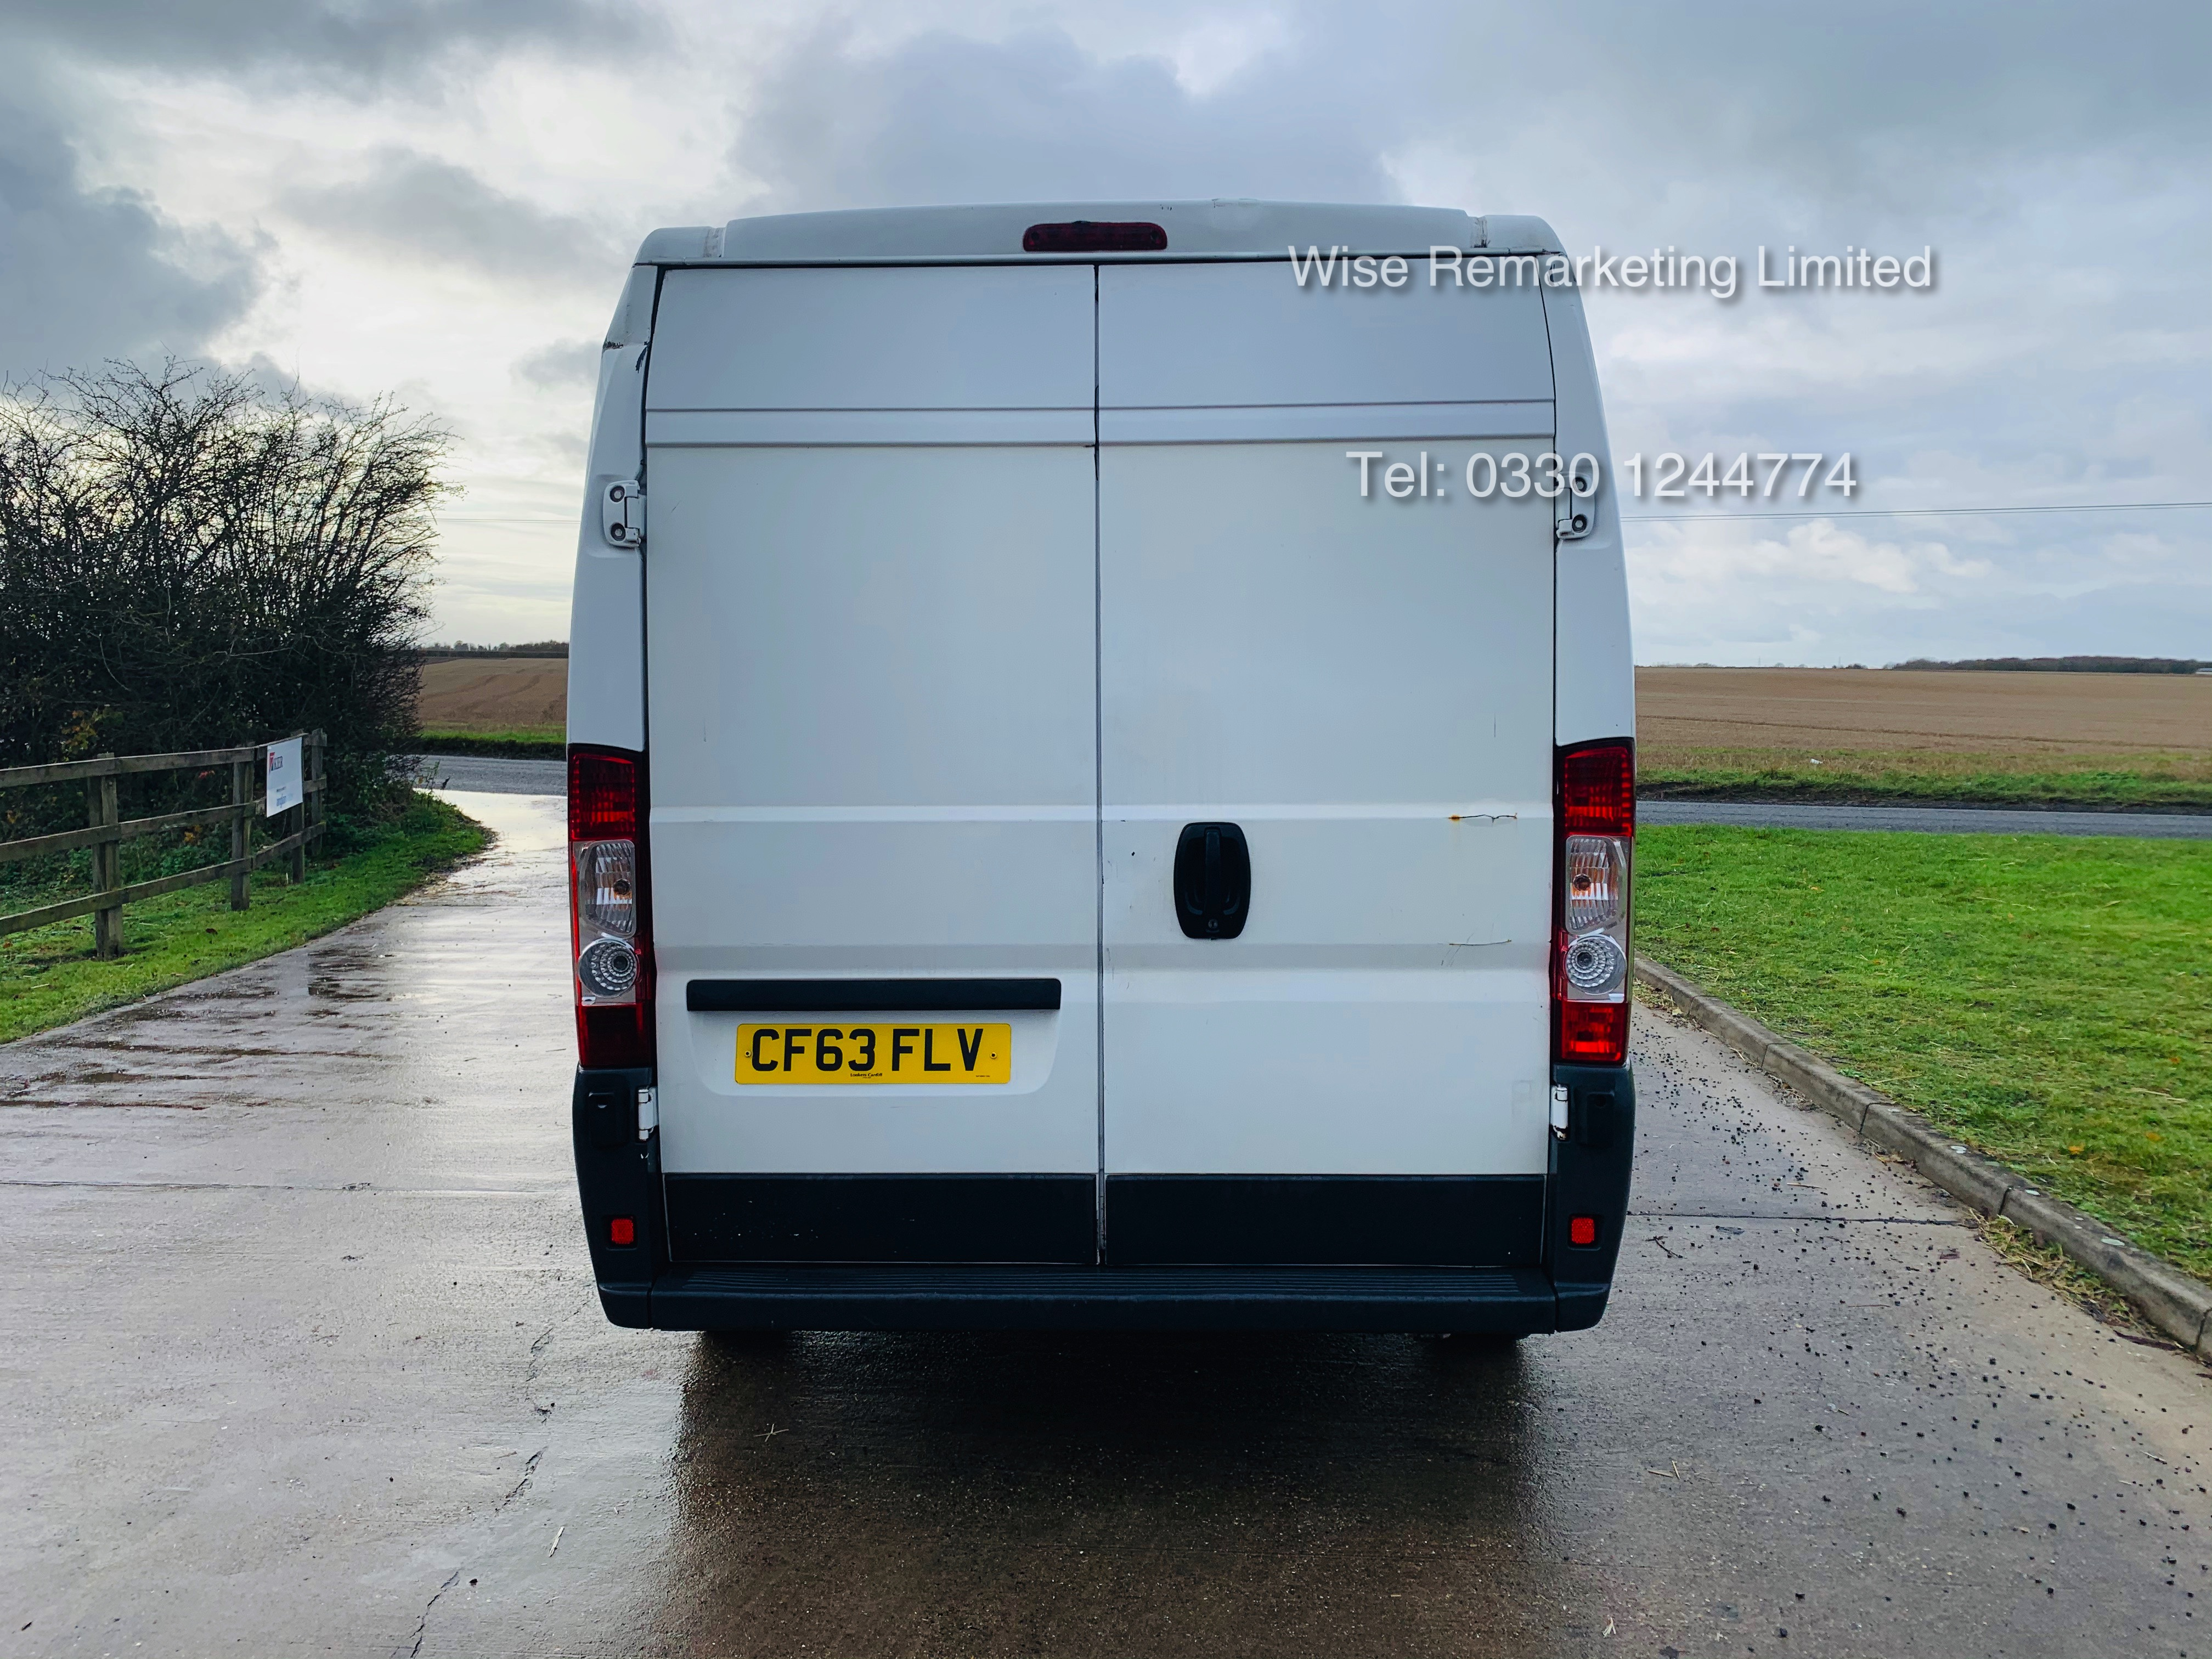 Peugeot Boxer 335 2.2 HDi (L3H2) 2014 Model - 1 Keeper From New - Long Wheel Base - Image 4 of 17